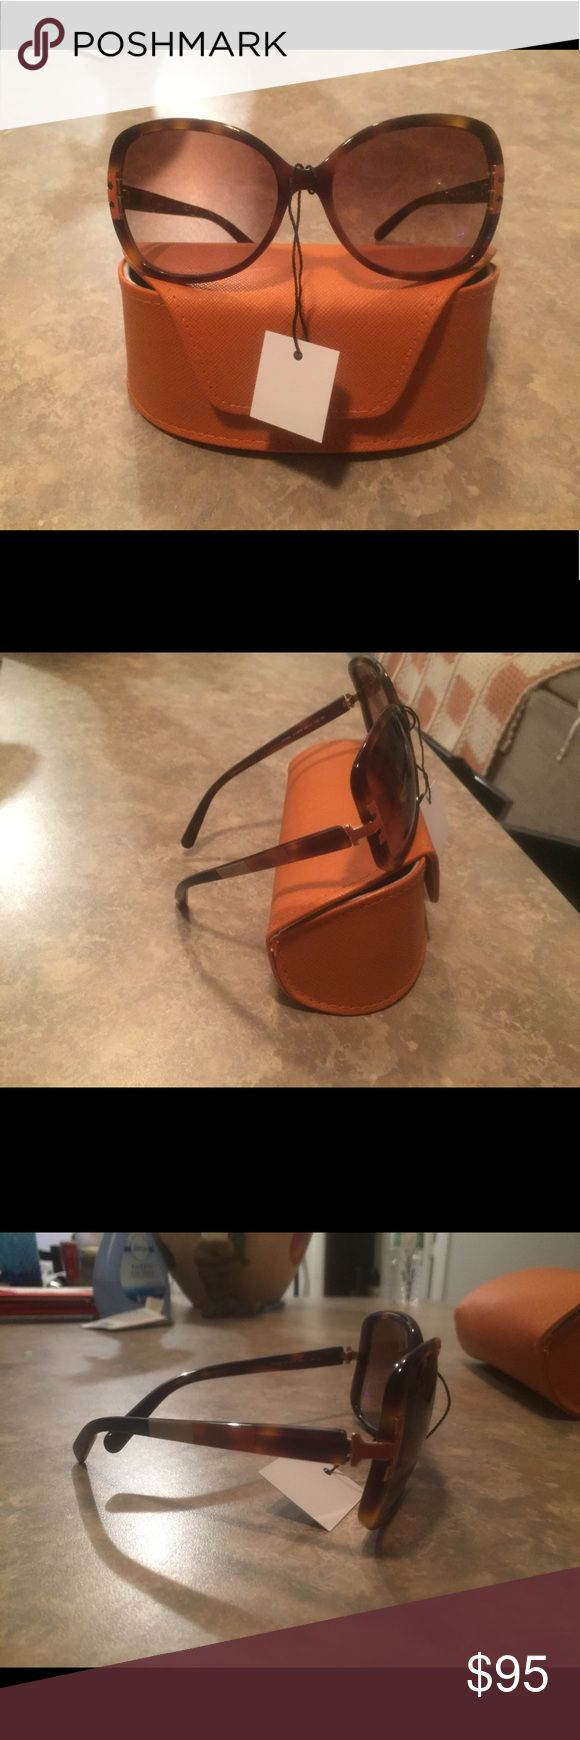 Tory Burch Tortoise Color Block Sunnies EUC are these authentic Tory Burch Tortoise Color Block Sunnies, no scratches complete with case as pictured. Retails $300 Tory Burch Accessories Sunglasses